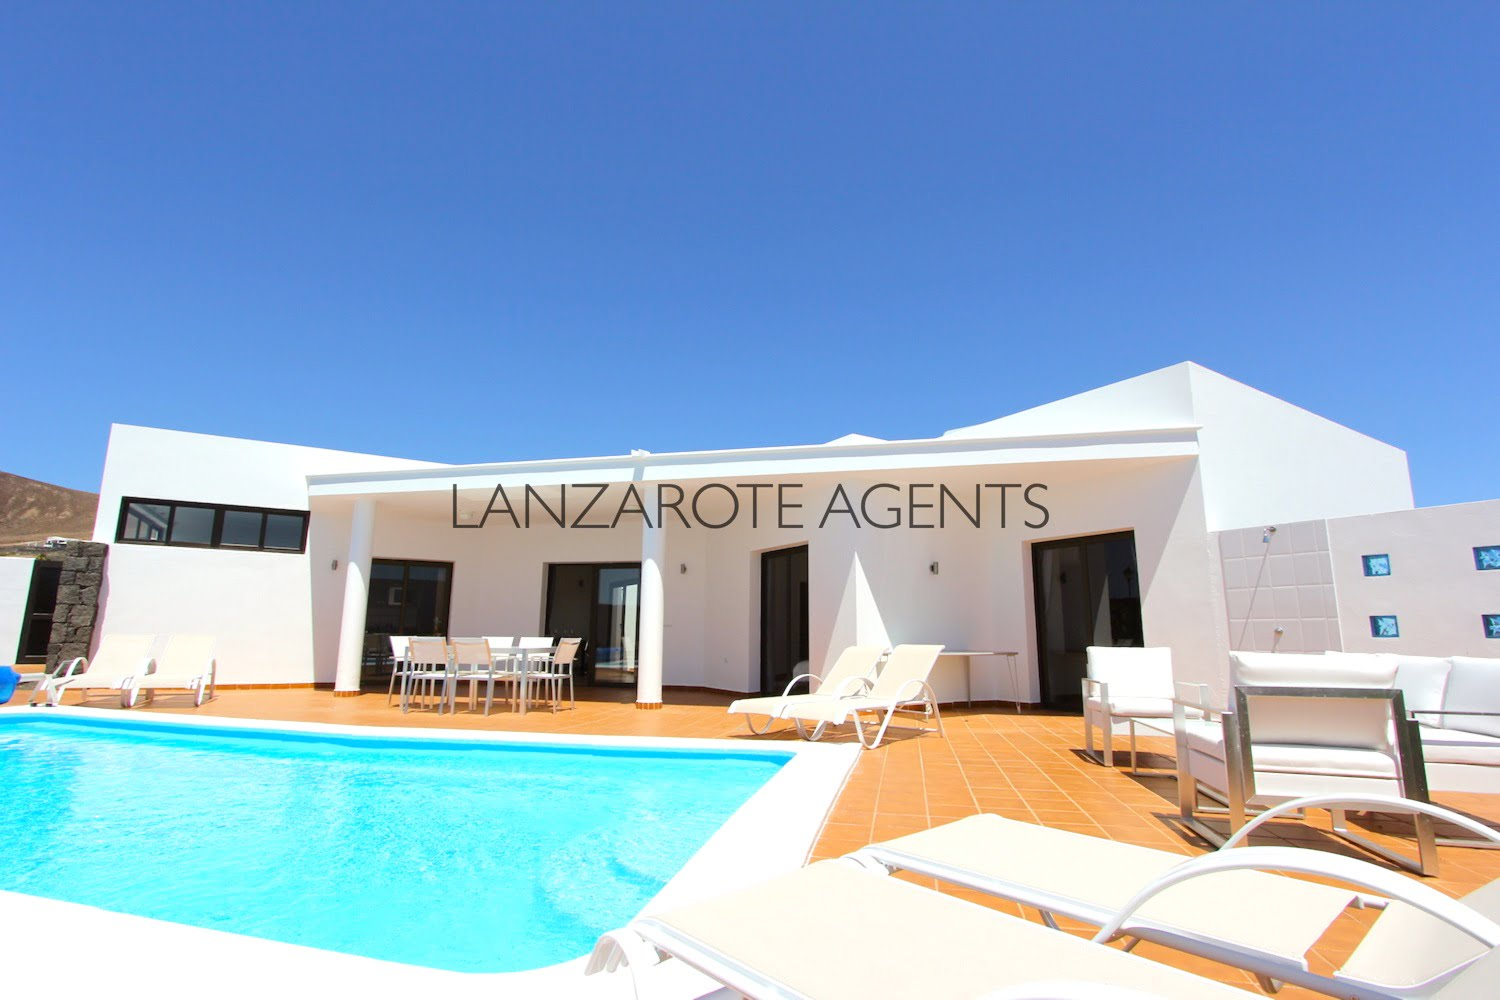 Fabulous Independent 3 Bedroom Villa with Private Pool and Ready to Move in or Continue Renting!